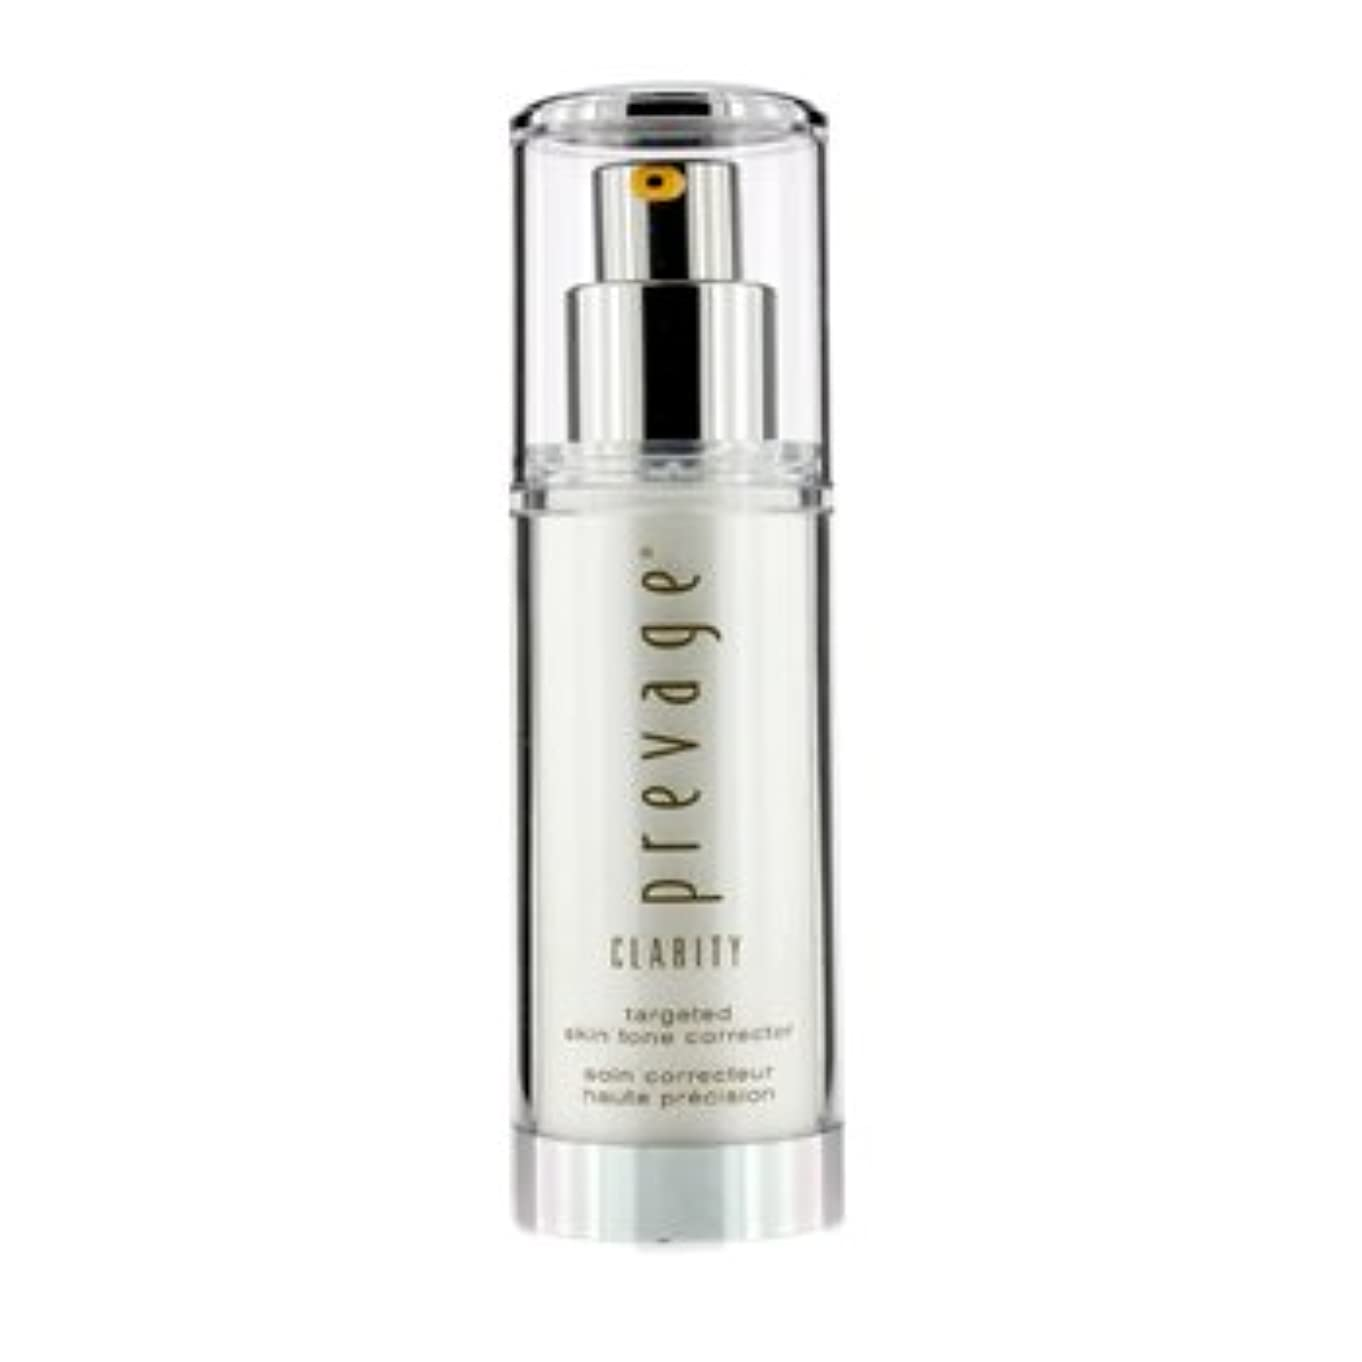 オープニングおかしいさまよう[Prevage] Clarity Targeted Skin Tone Corrector 30ml/1oz